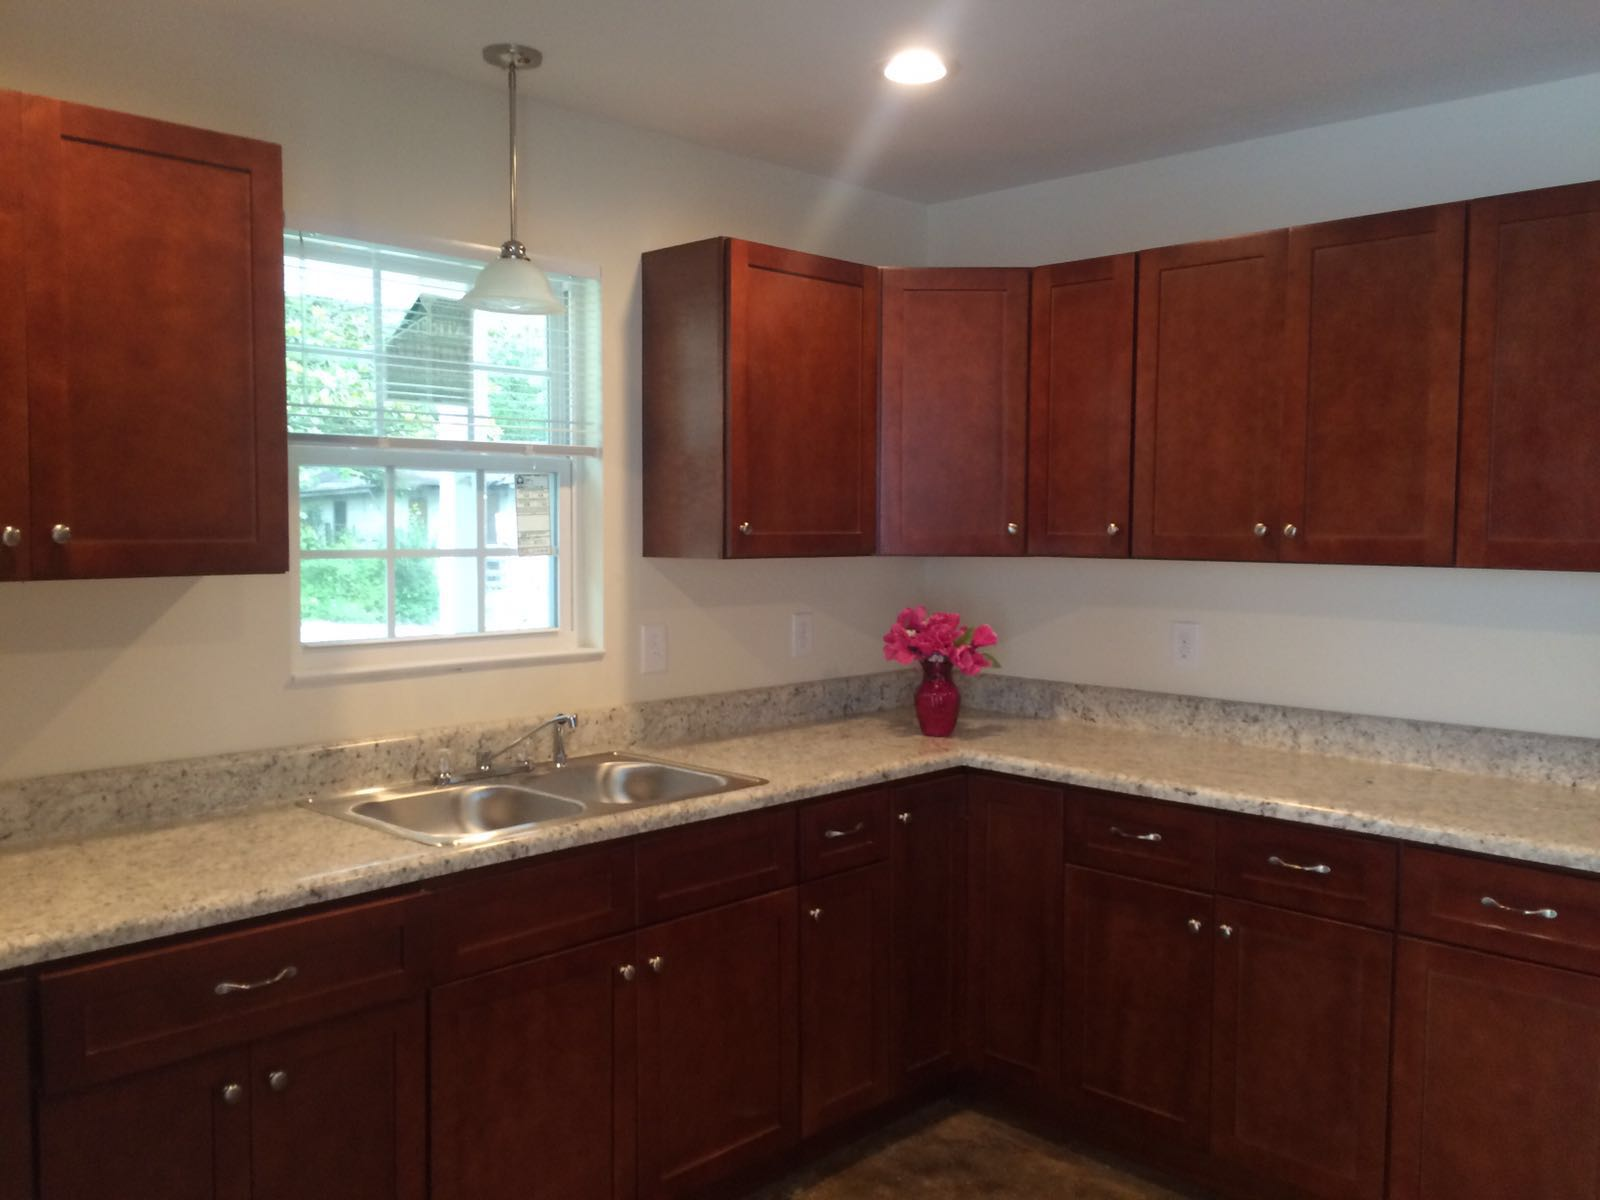 Colson Cherry Shaker kitchen in a Habitat for Humanity home in Darlington, SC.